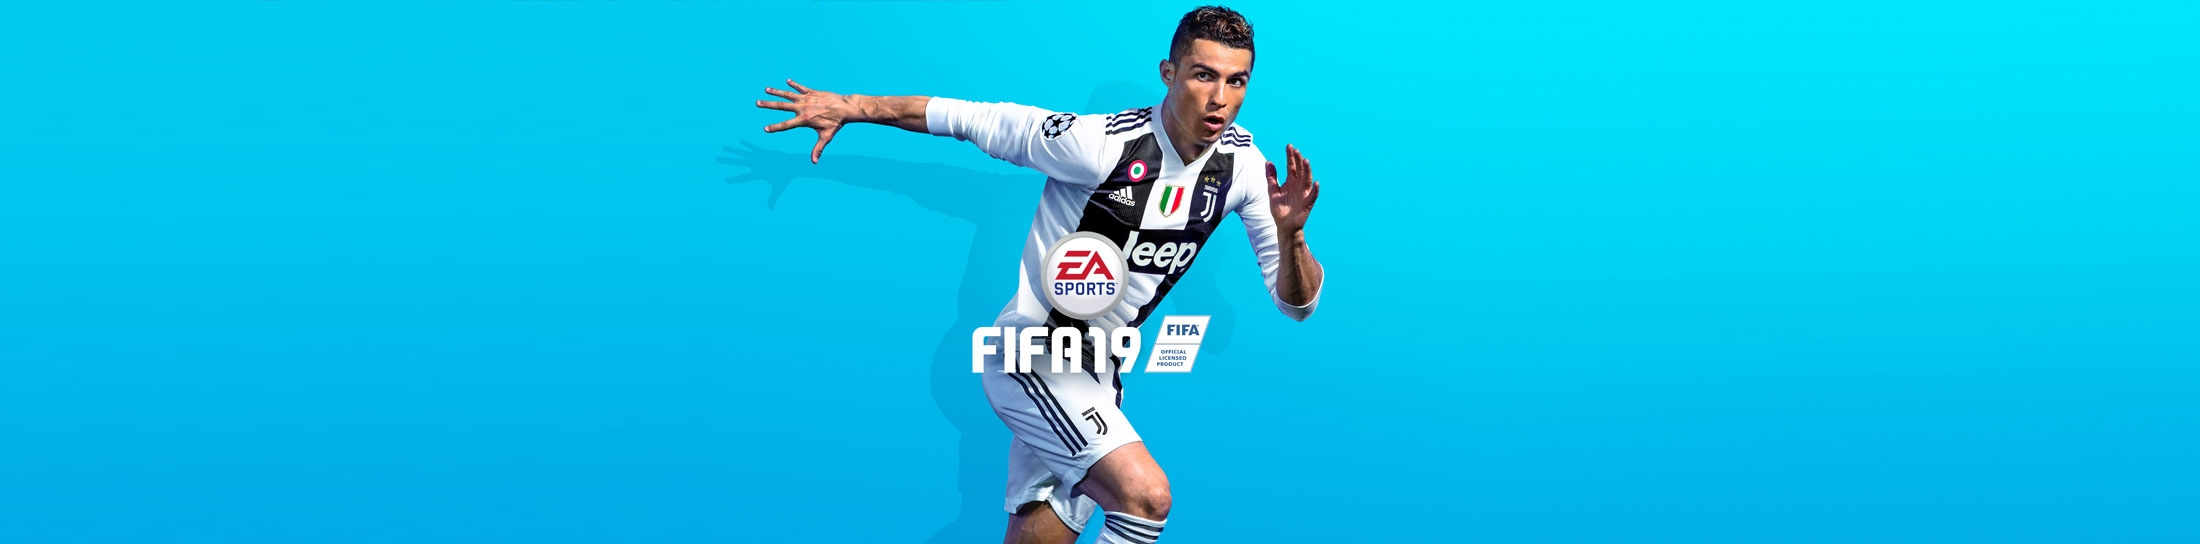 FIFA 19 500GB PS4 Console Bundle - with second DUALSHOCK 4, FIFA 19 Ultimate Team Icons and Rare Player Pack